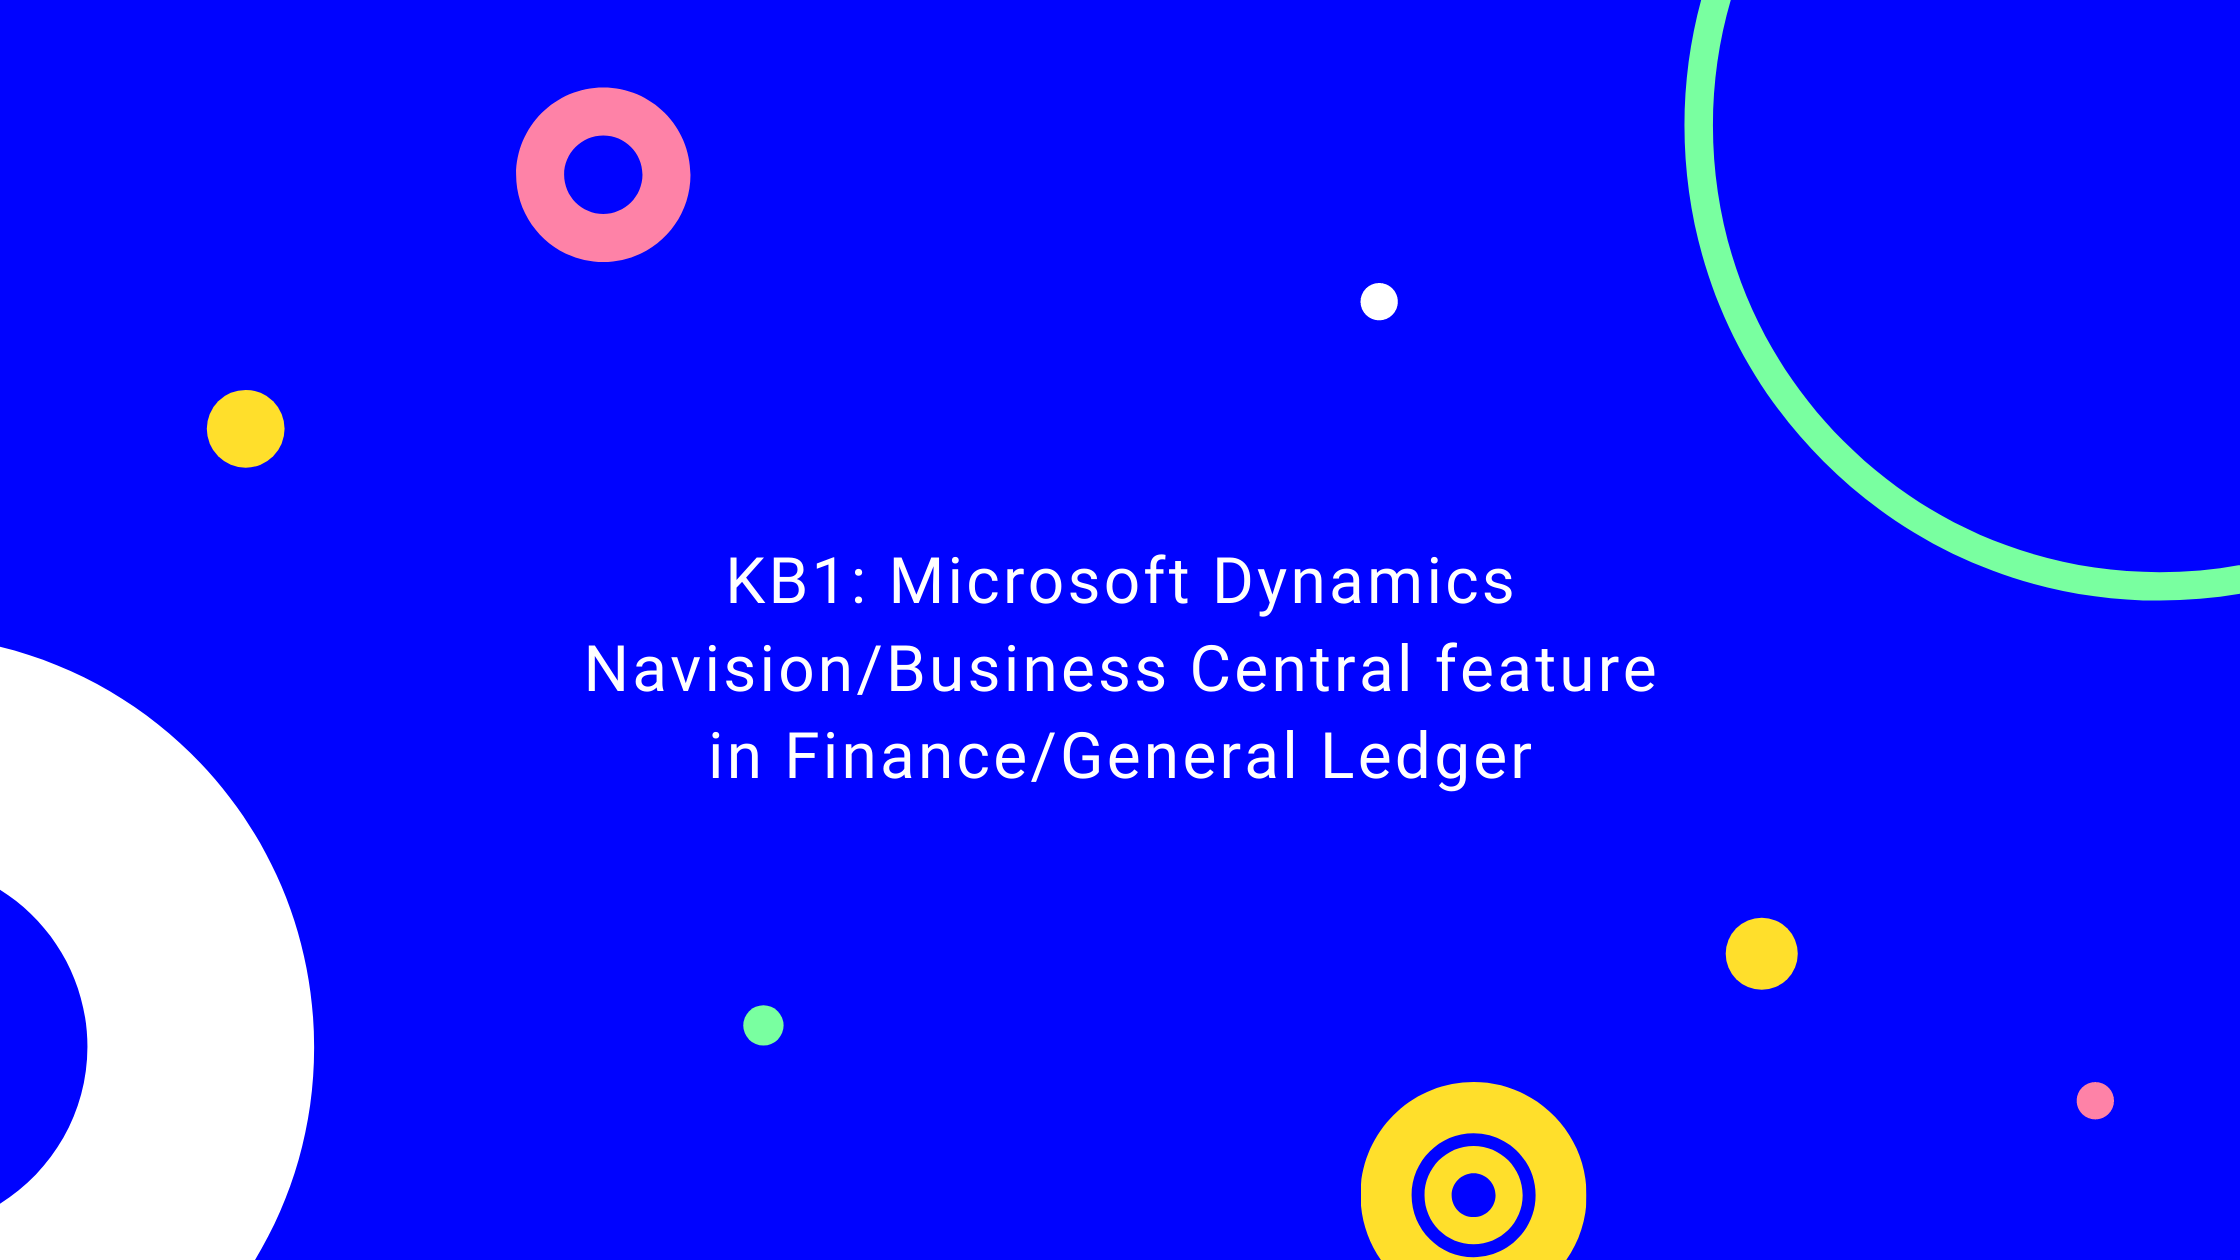 KB1: Microsoft Dynamics Navision/Business Central feature in Finance/General Ledger Blog